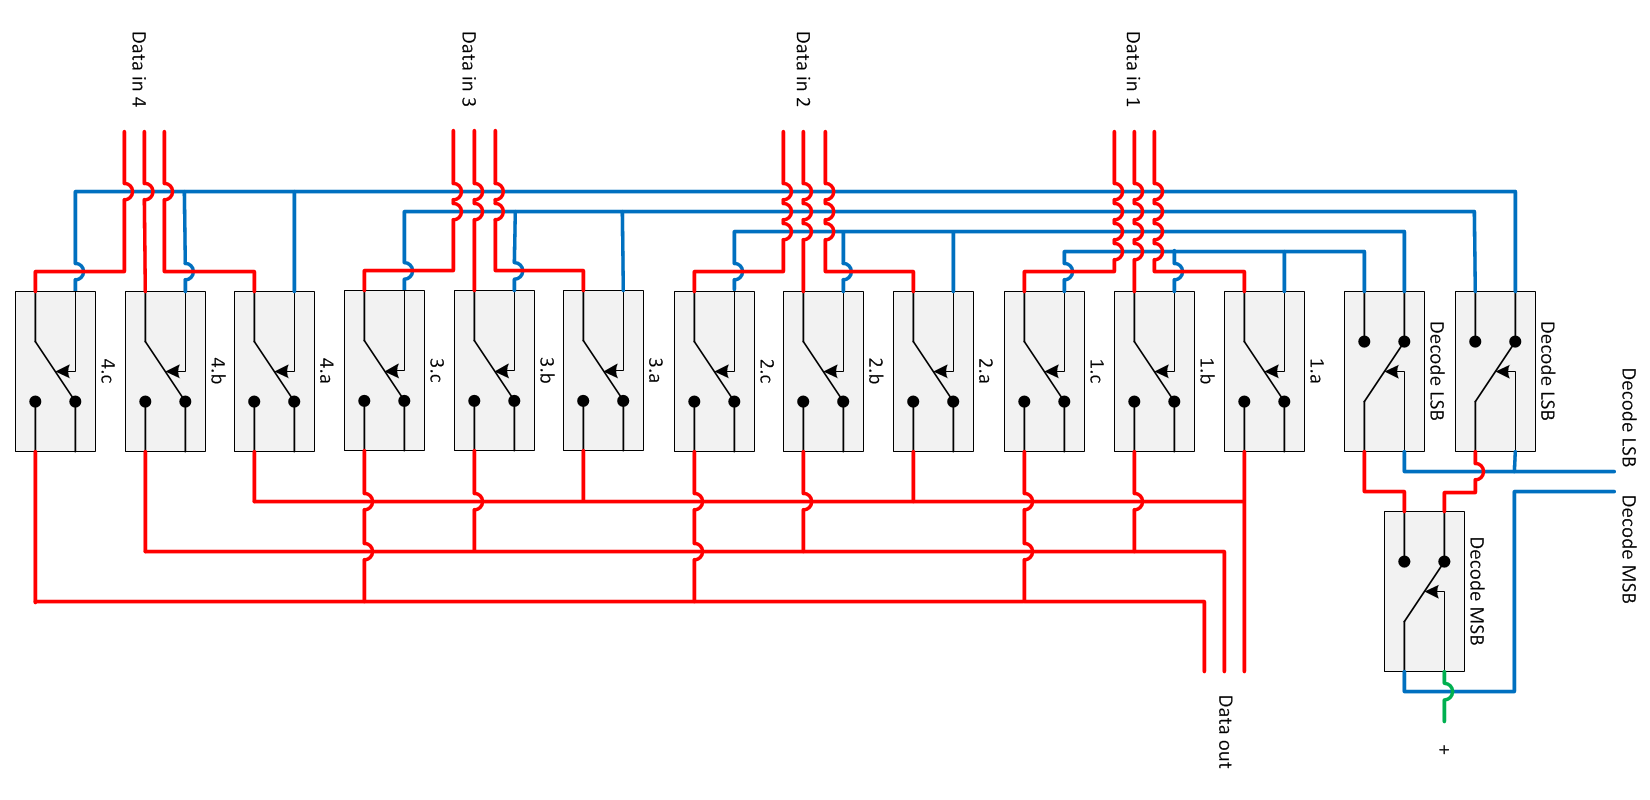 Relay Logic The Simplified And Gate Shown Above Has Two Inputs Switch A Multiplexer Relais